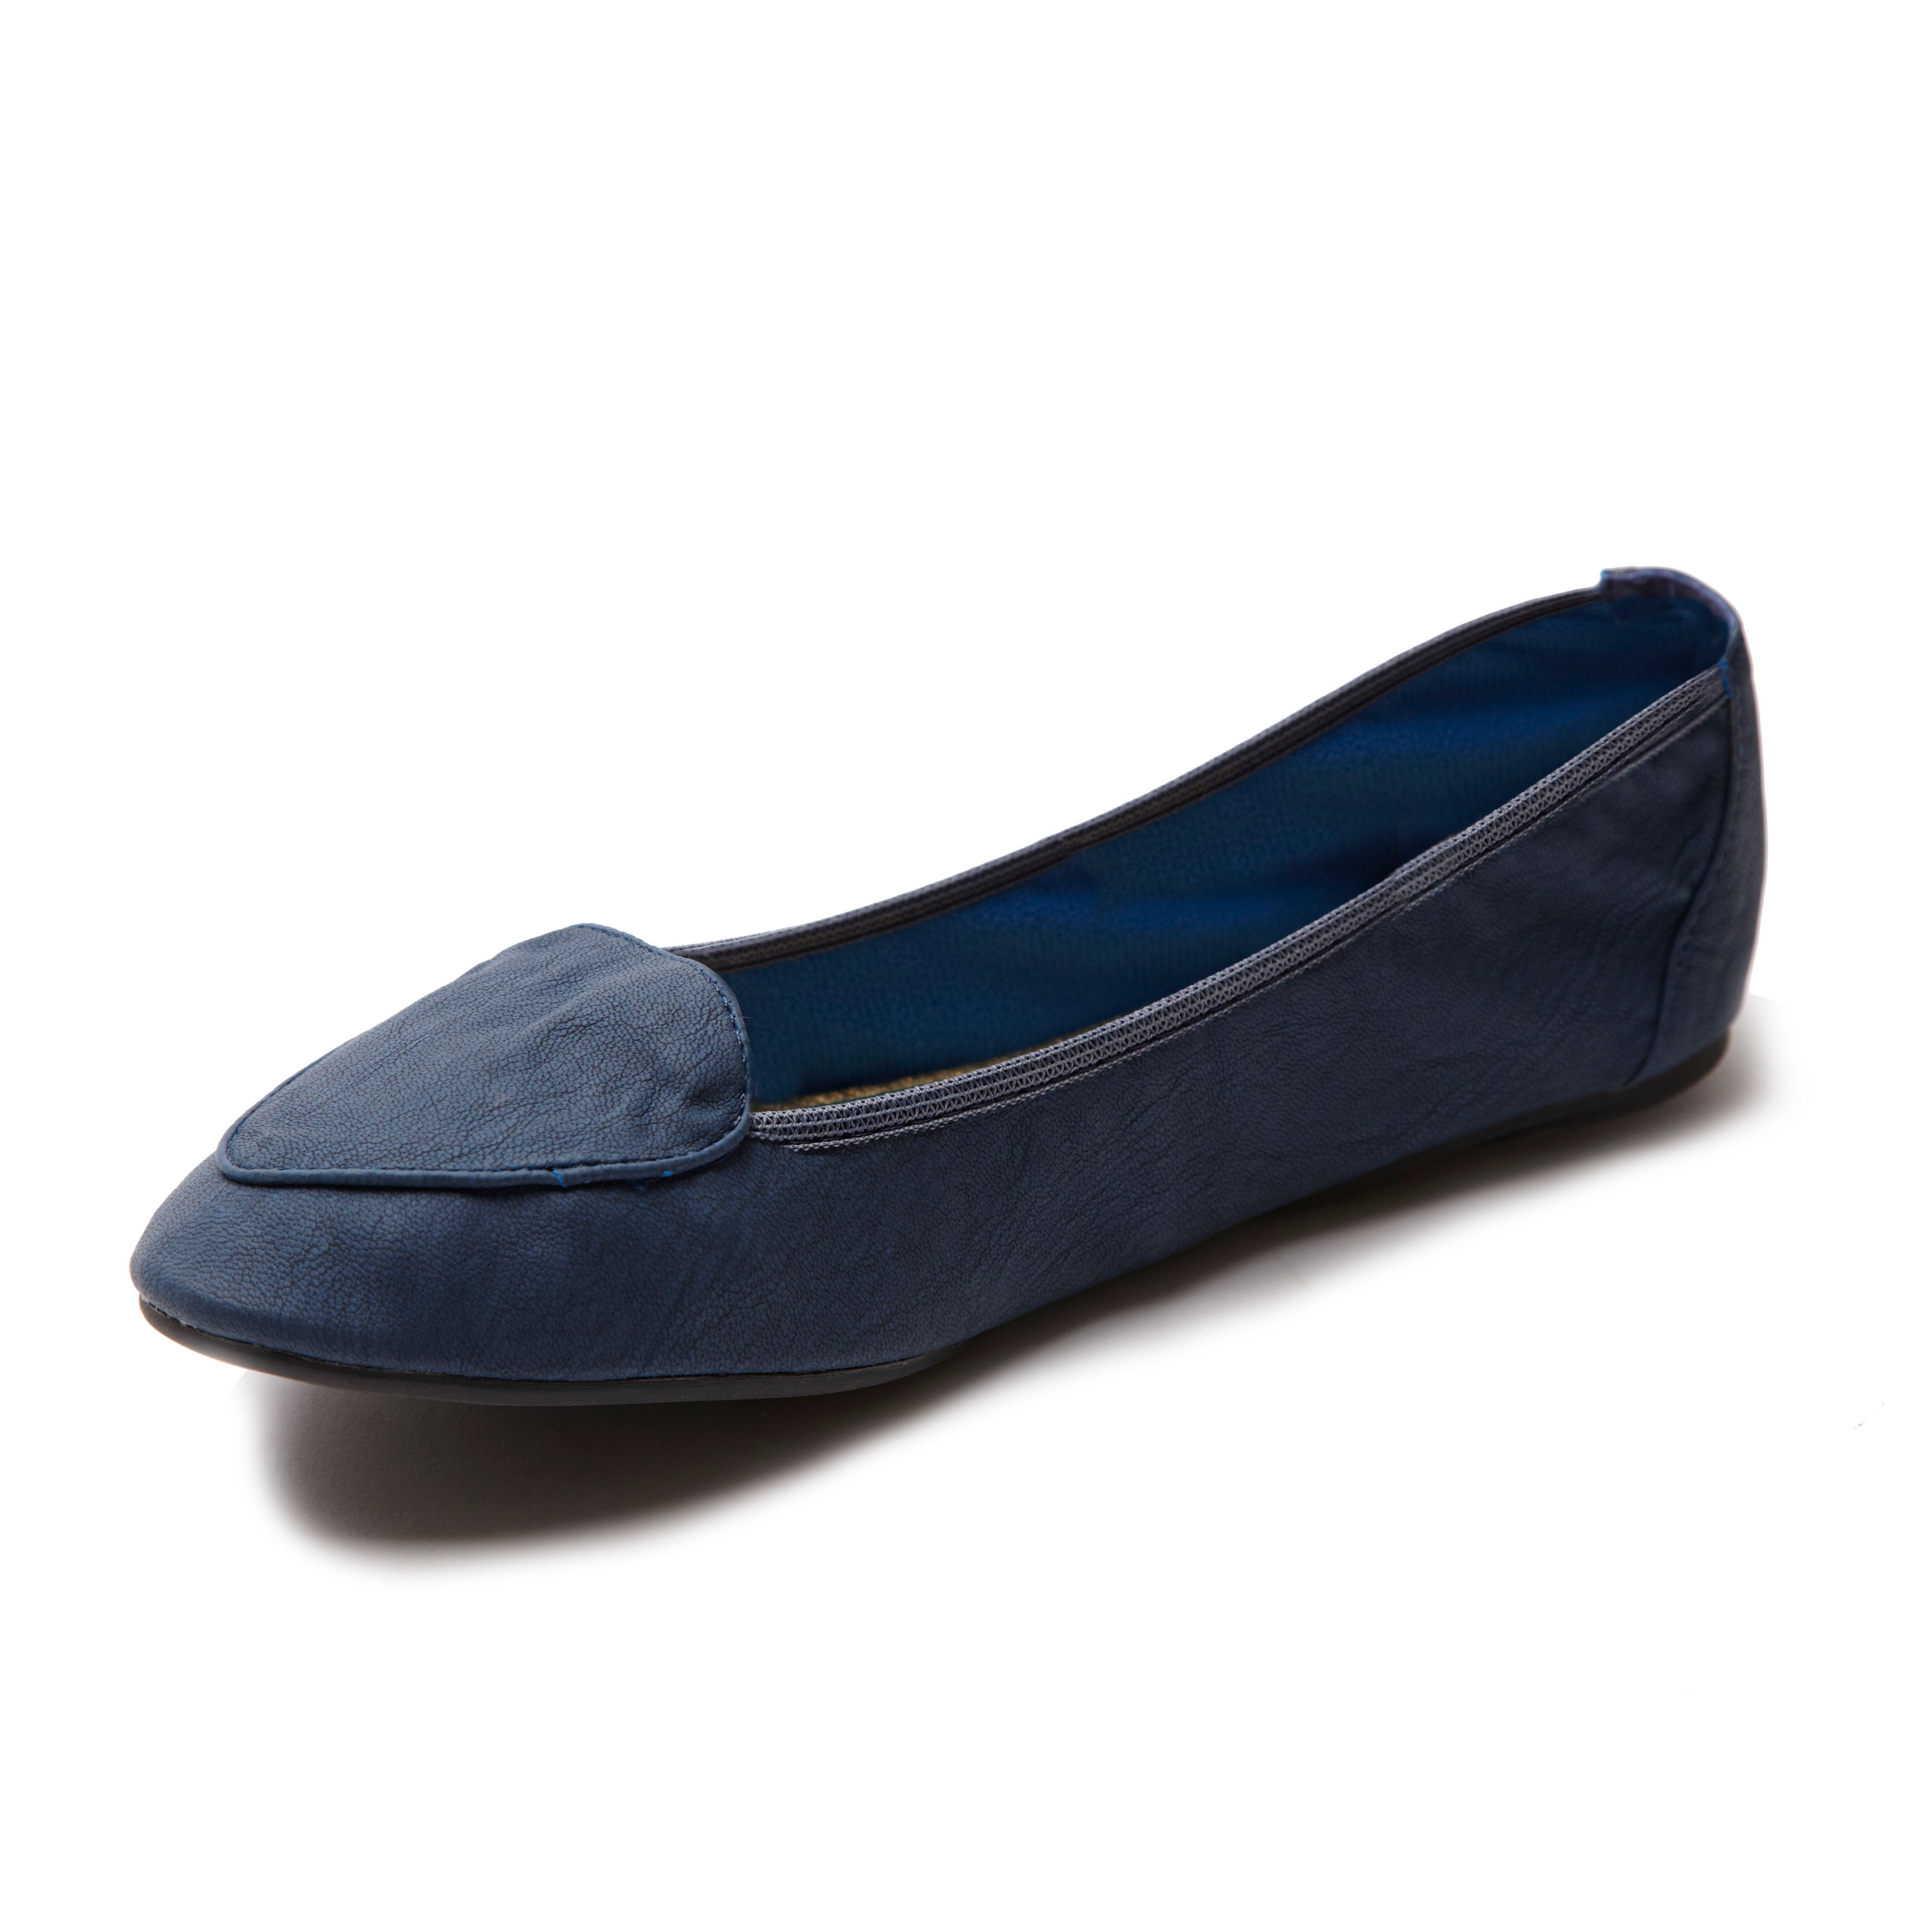 Islington navy foldable loafer